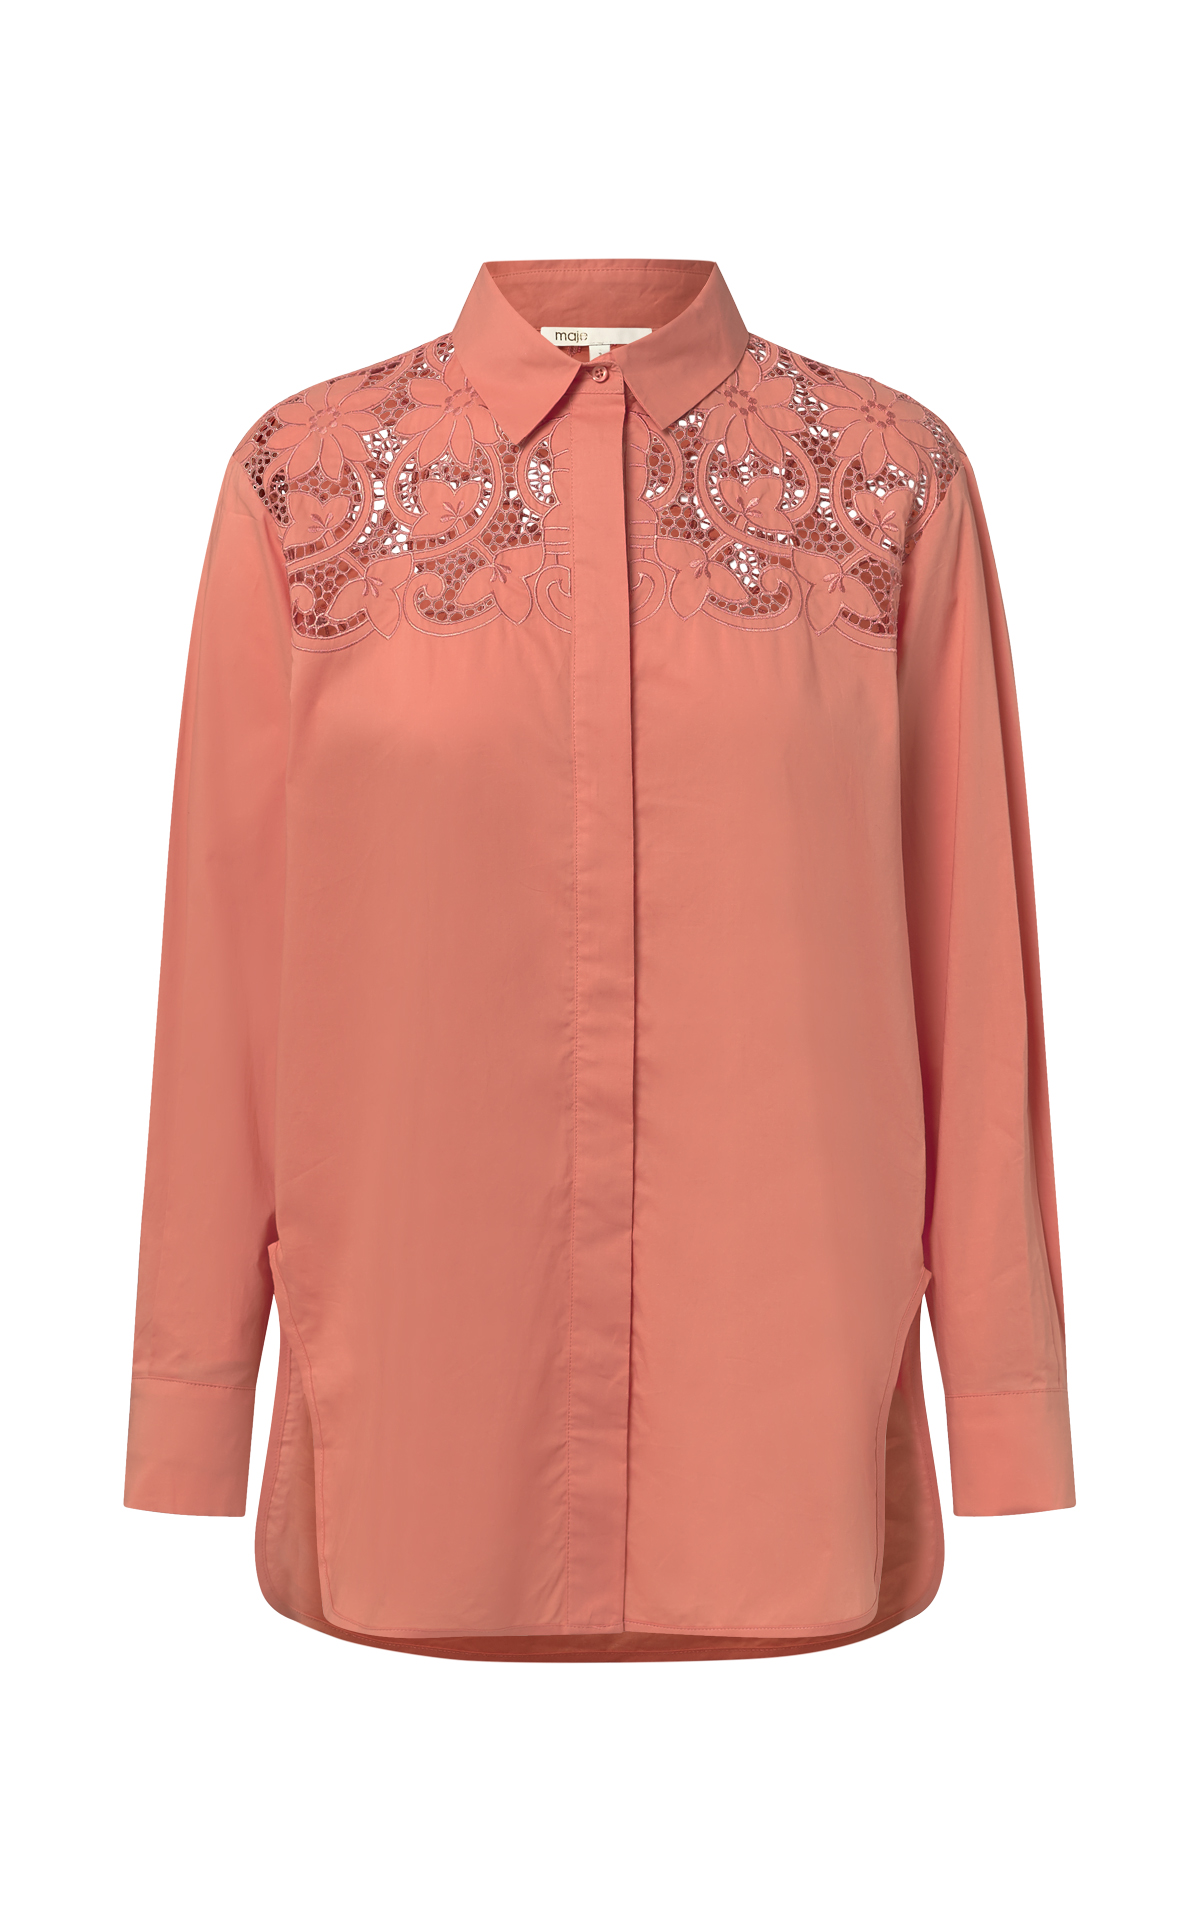 Coral shirt with embroidery for woman Maje